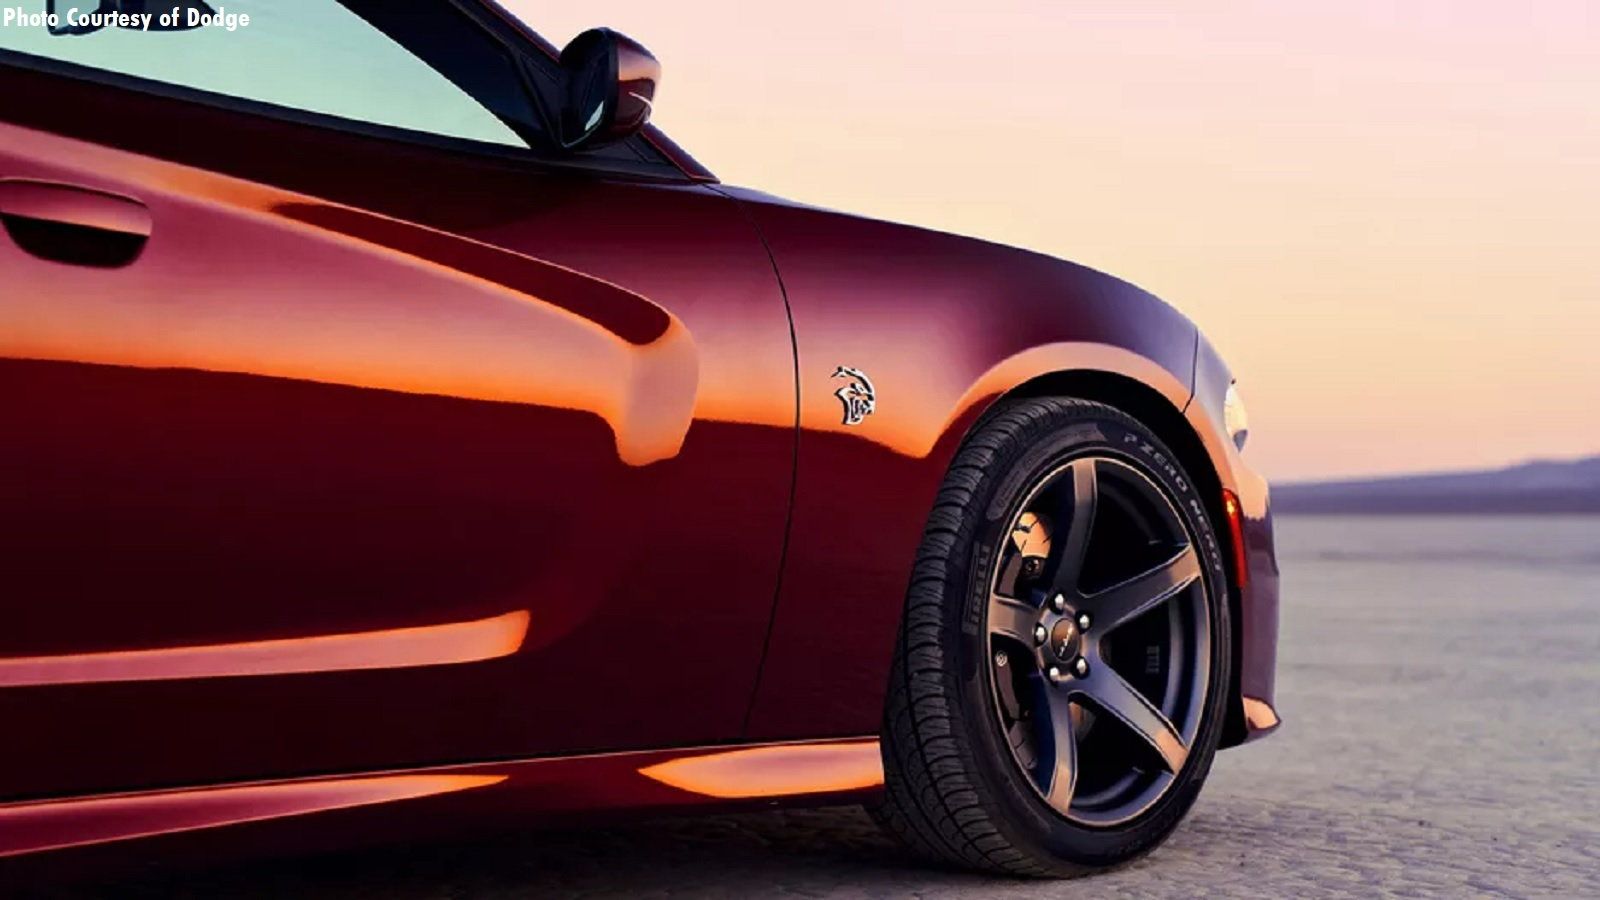 New 2019 Charger Hellcat Gets New Bits and Pieces